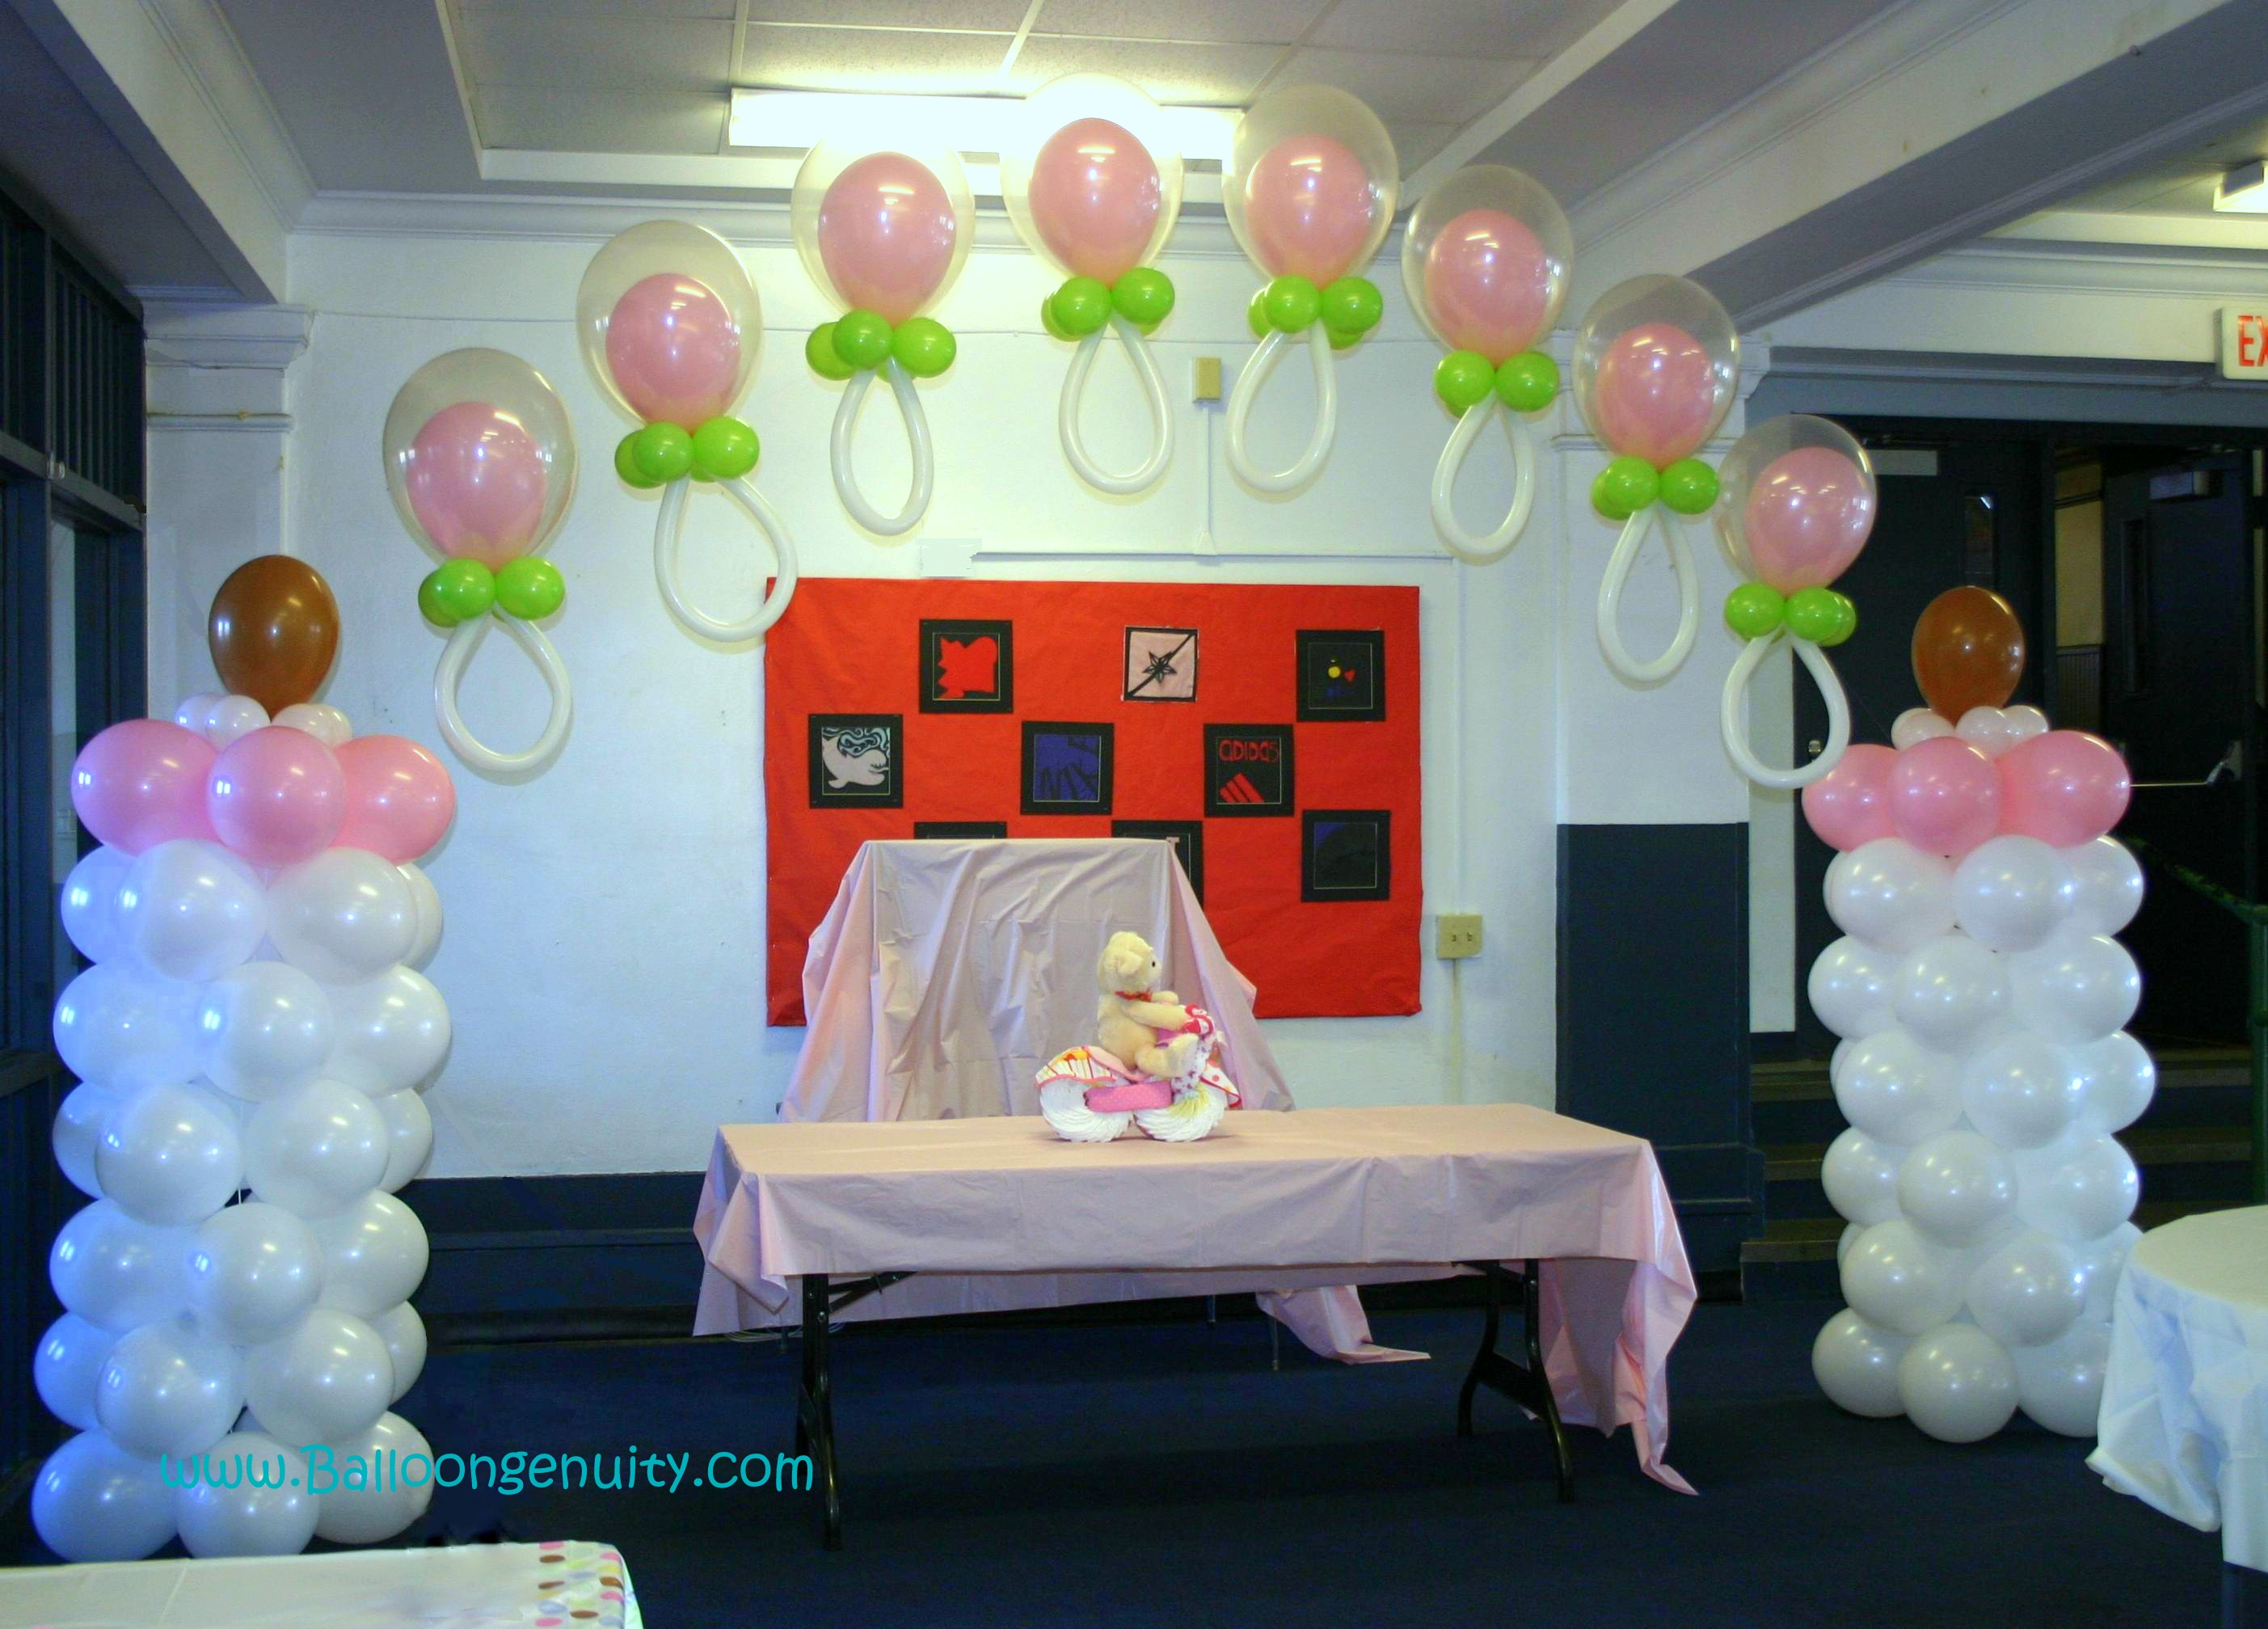 Balloongenuity ingenious balloon creativity the talented for Baby bottle balloon decoration